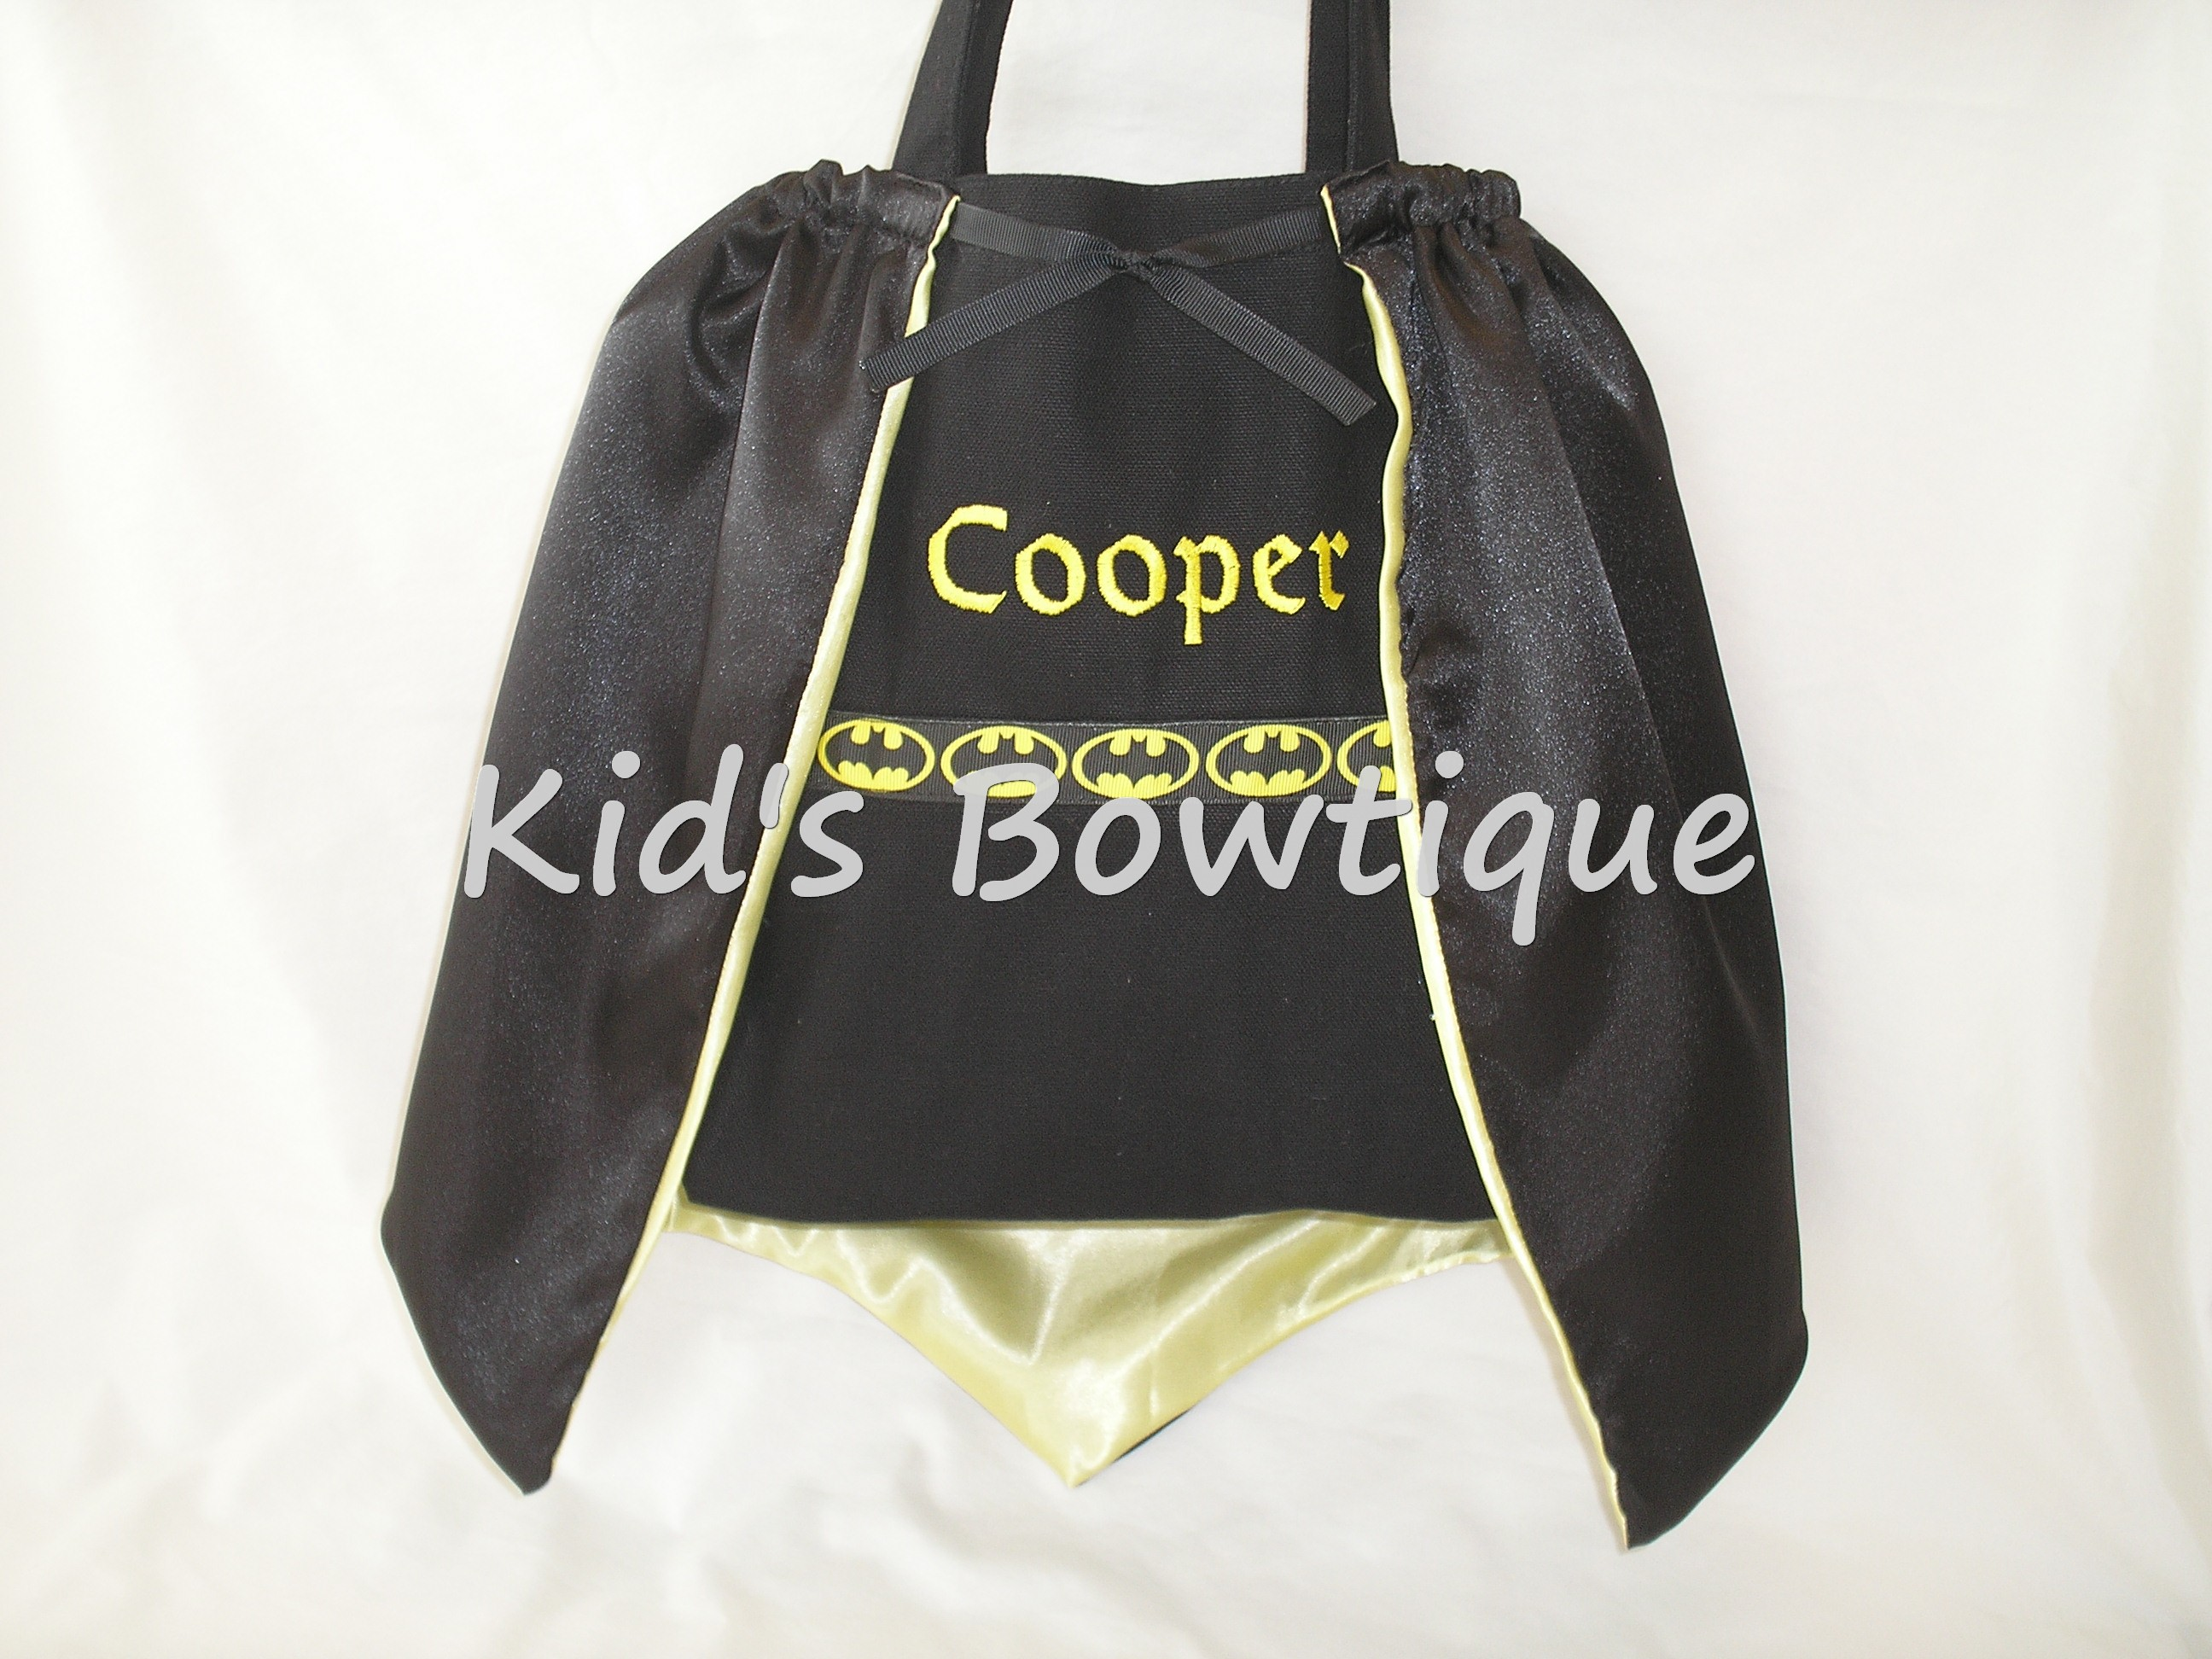 Monogrammed Batman Ribbon with Cape Tote Bag - Personalized Halloween Superhero Trick or Treat Bag